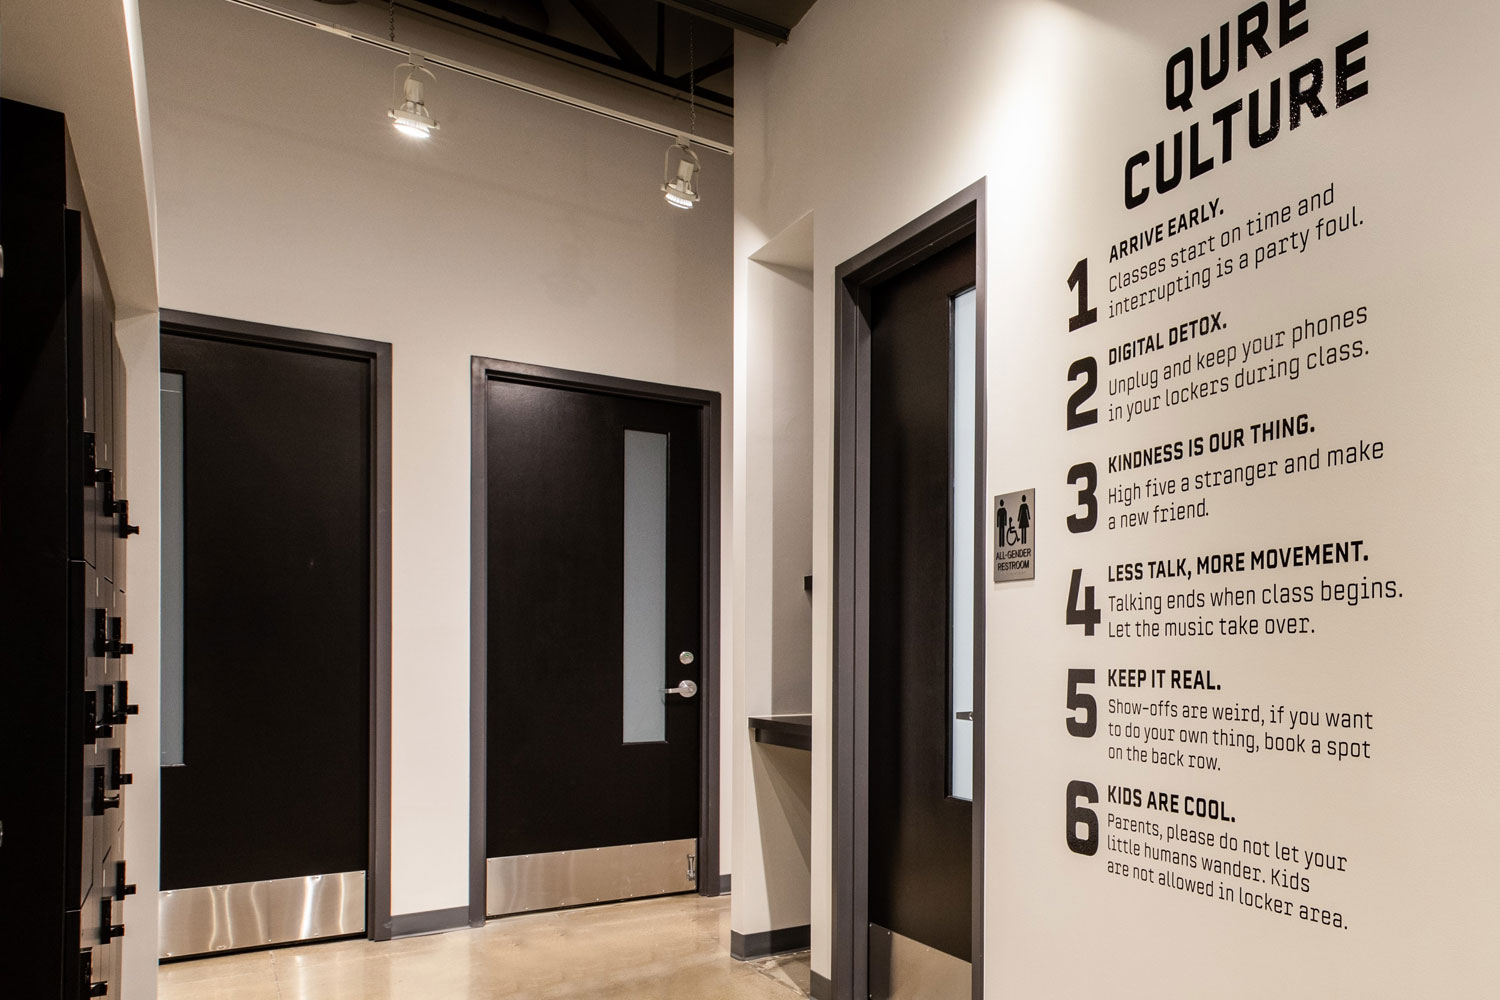 Qure Studio in Salt Lake City